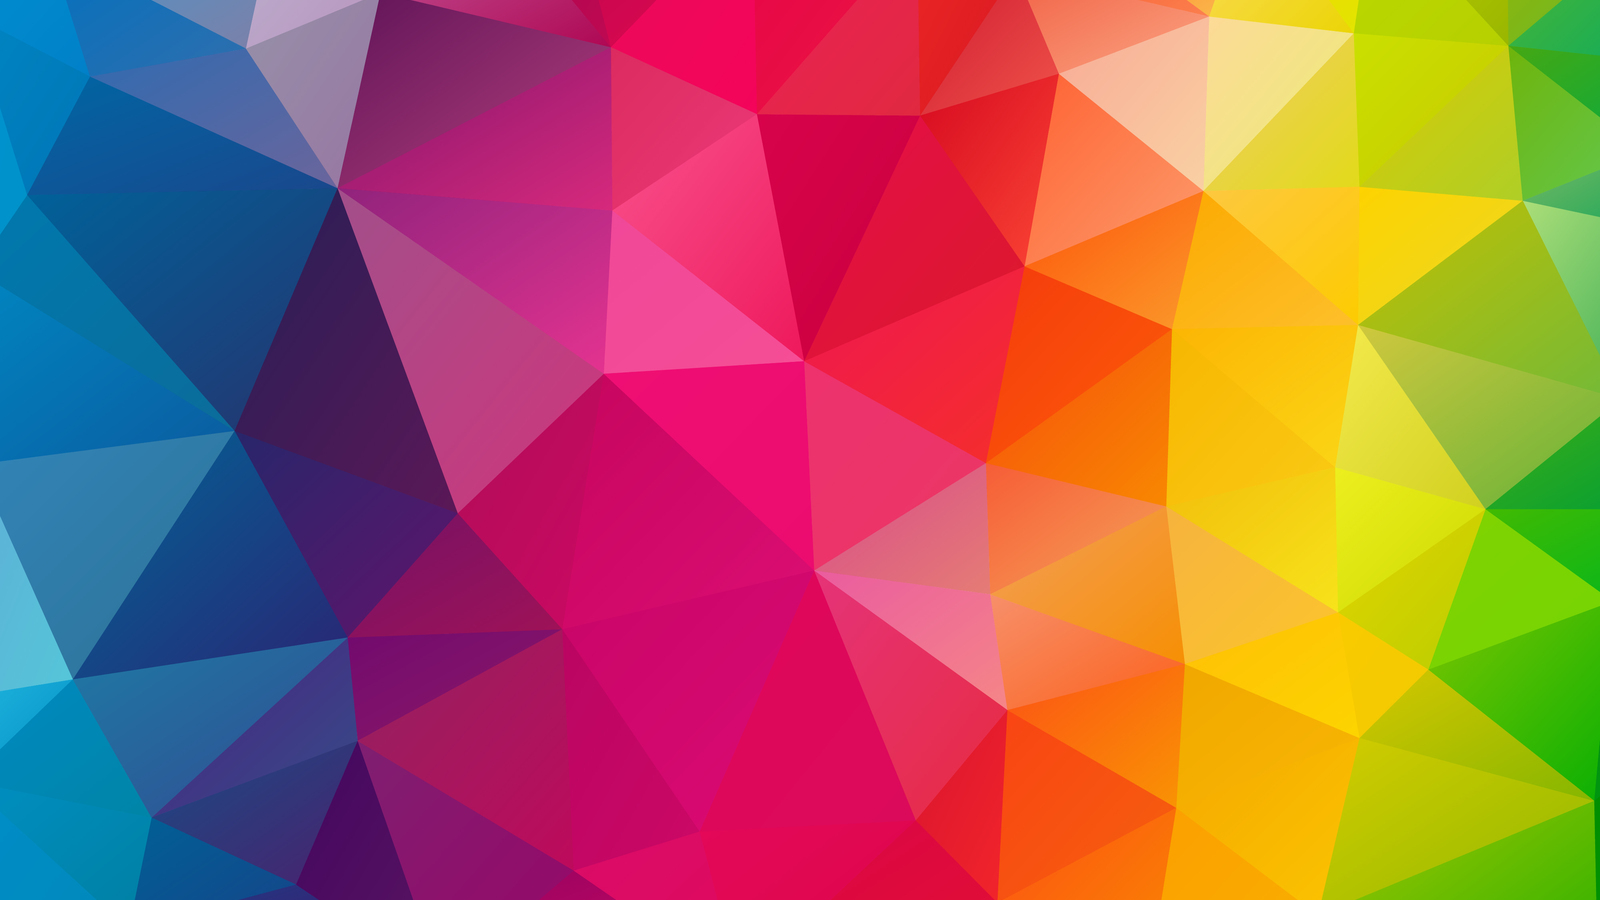 1600x900 triangles colorful background 1600x900 resolution hd 4k